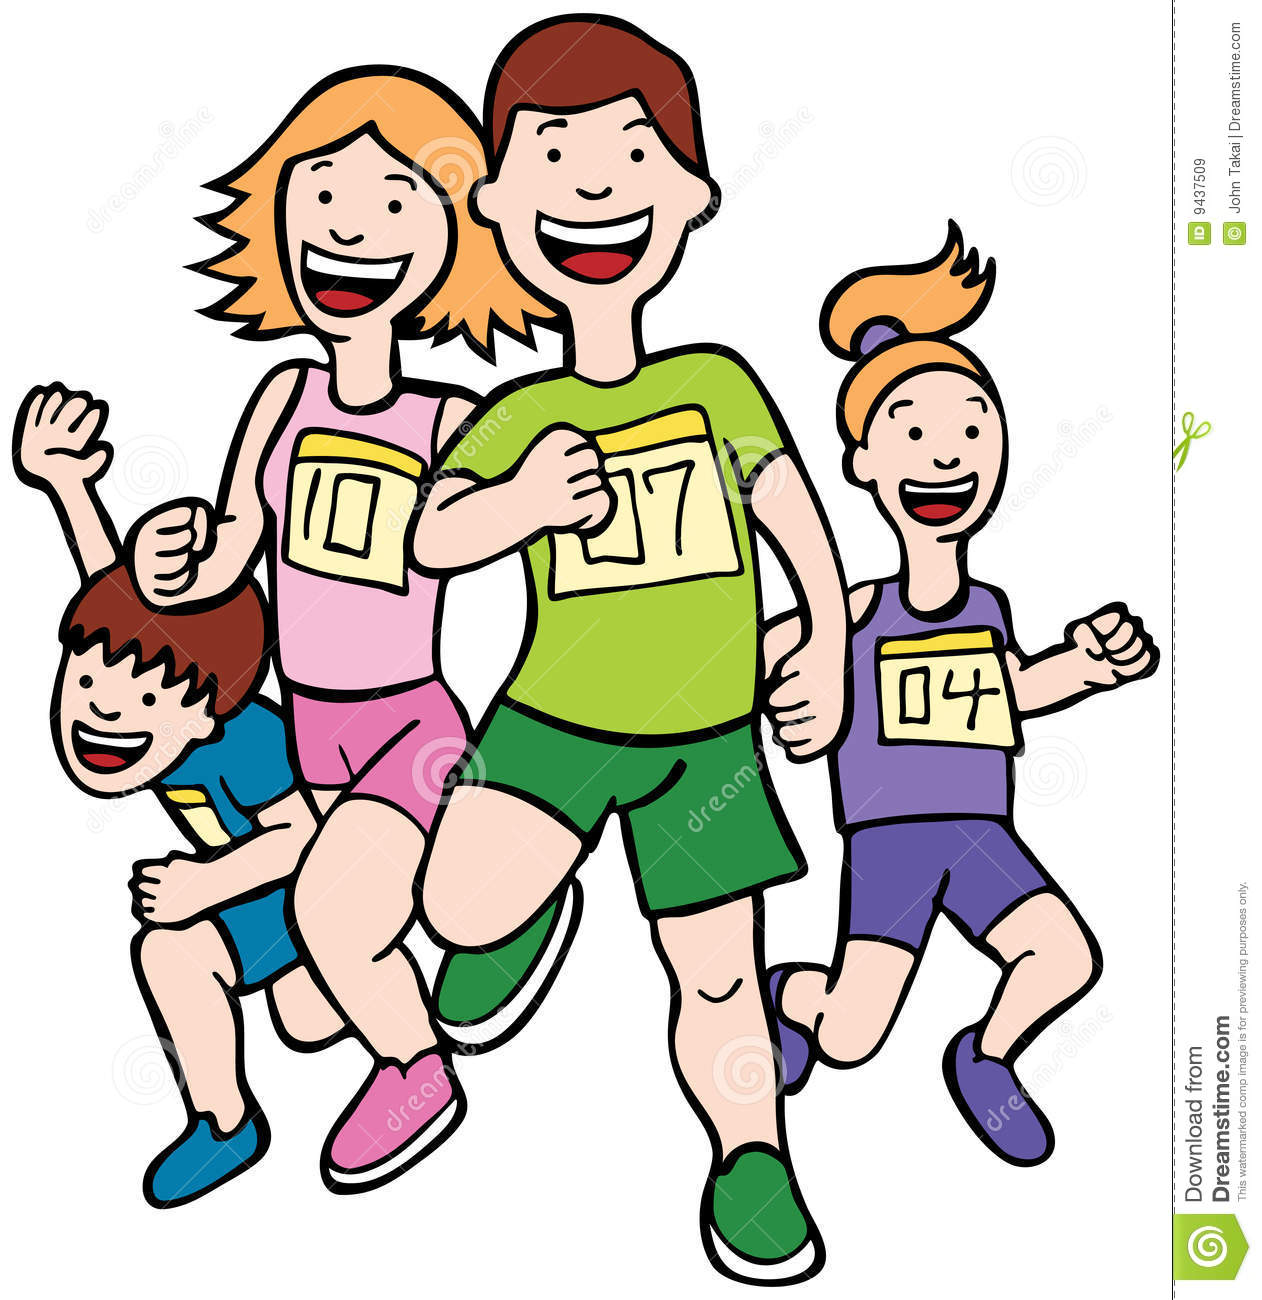 People Running Clipart Clipart Panda Fre-People Running Clipart Clipart Panda Free Clipart Images-0